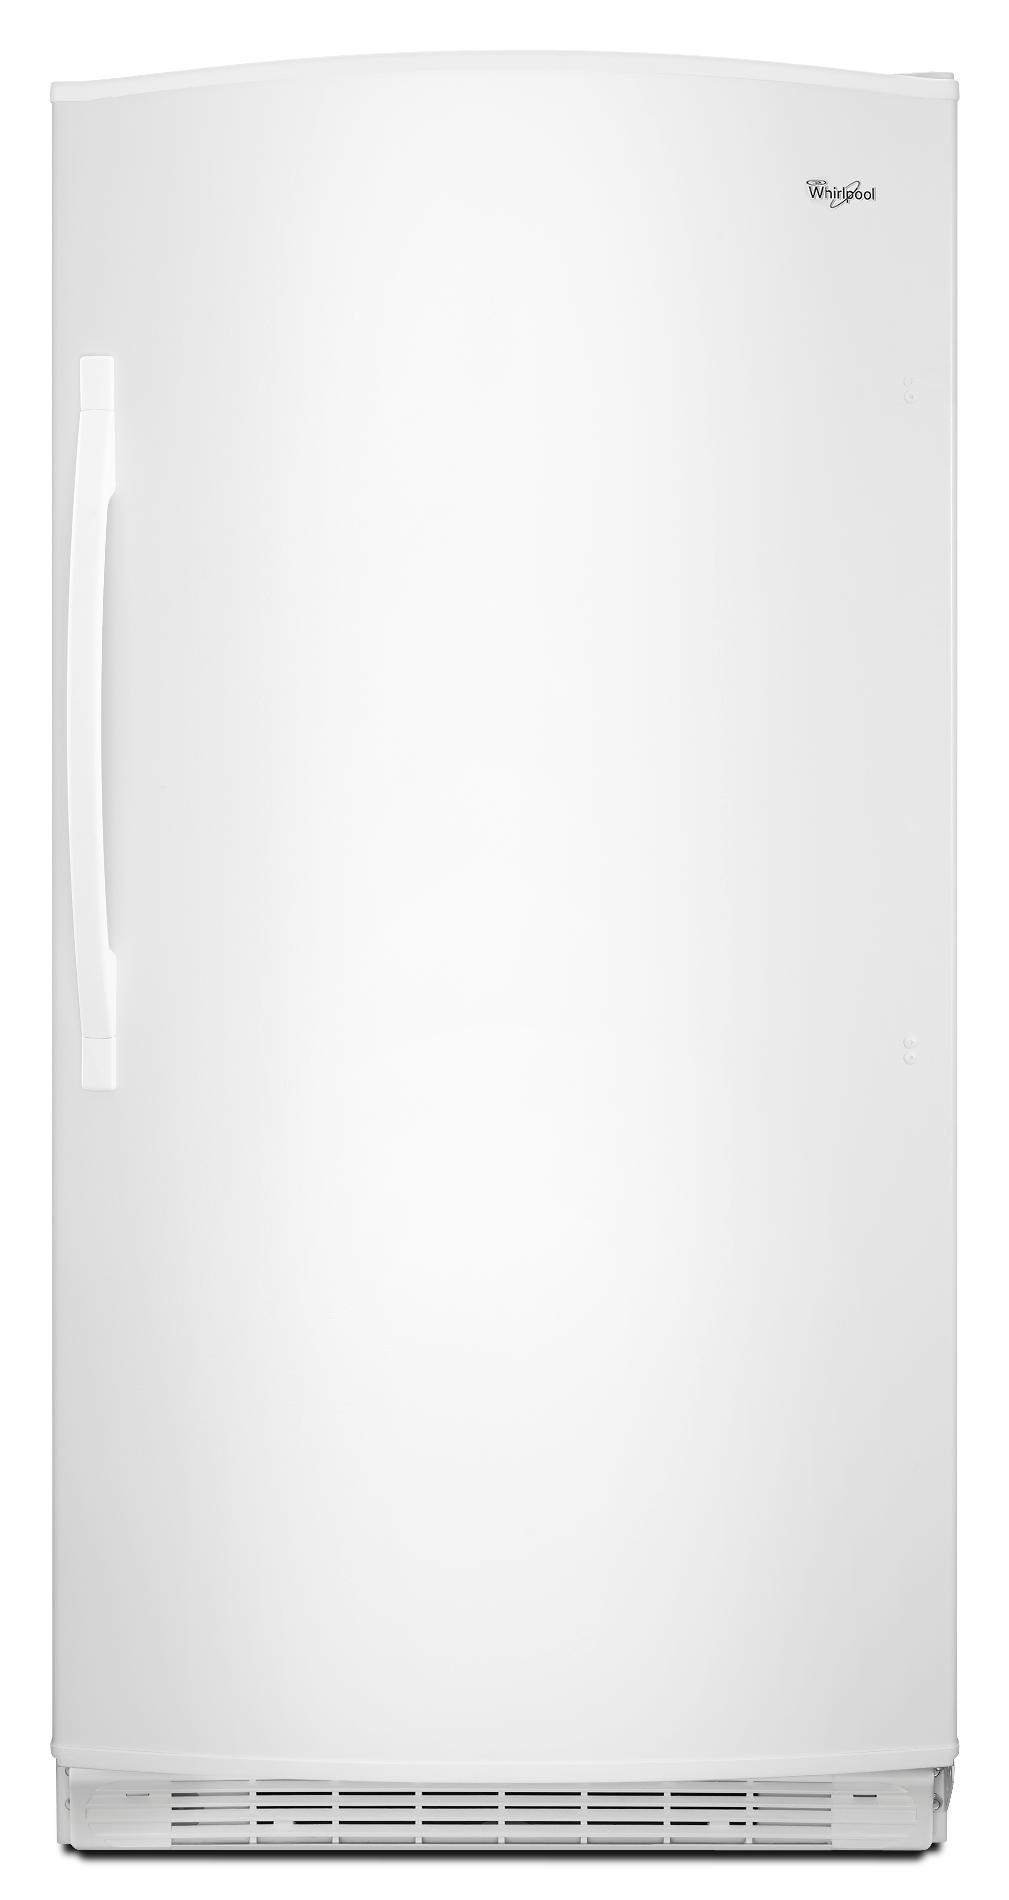 Whirlpool 20.1 cu. ft. Frost-Free Upright Freezer  - White